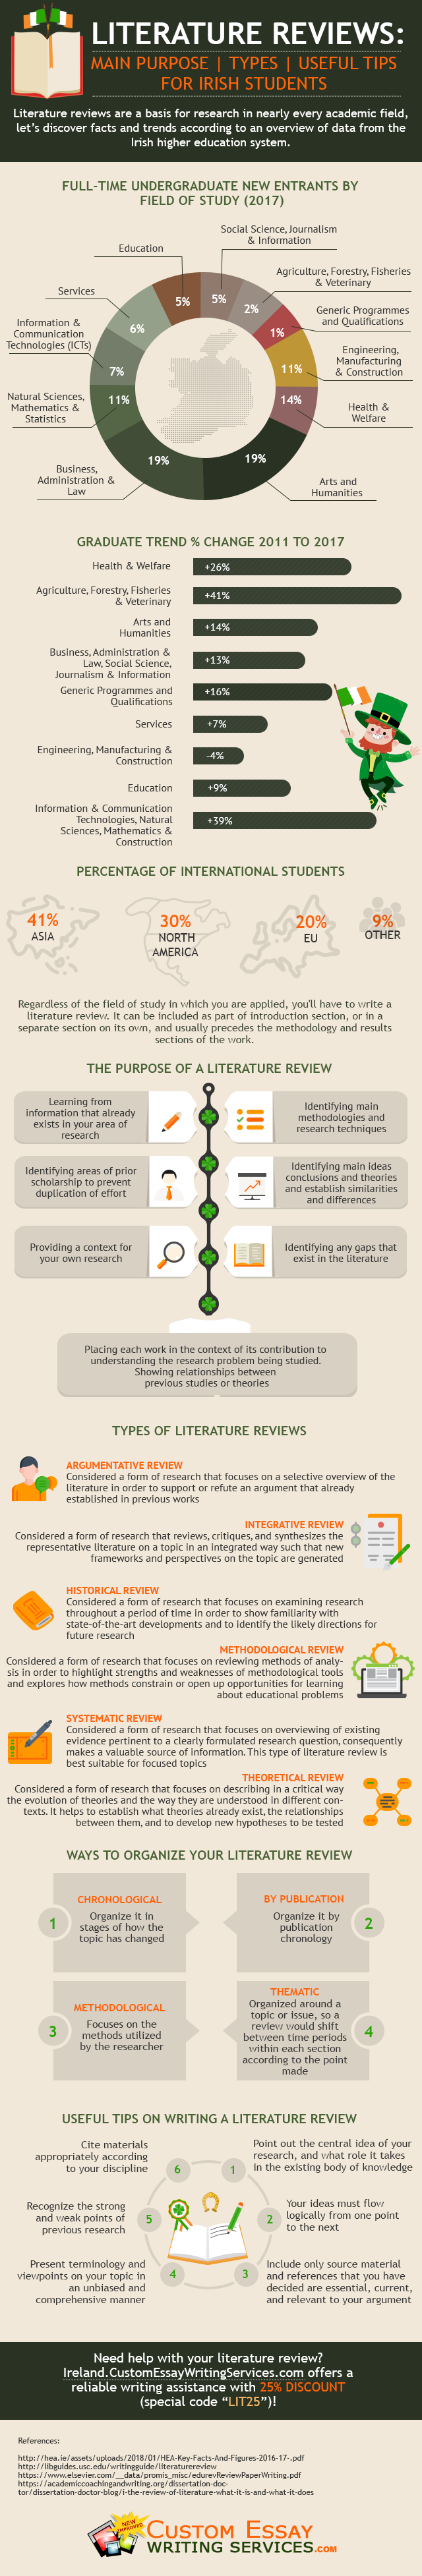 How to write a review of Irish literature #infographic